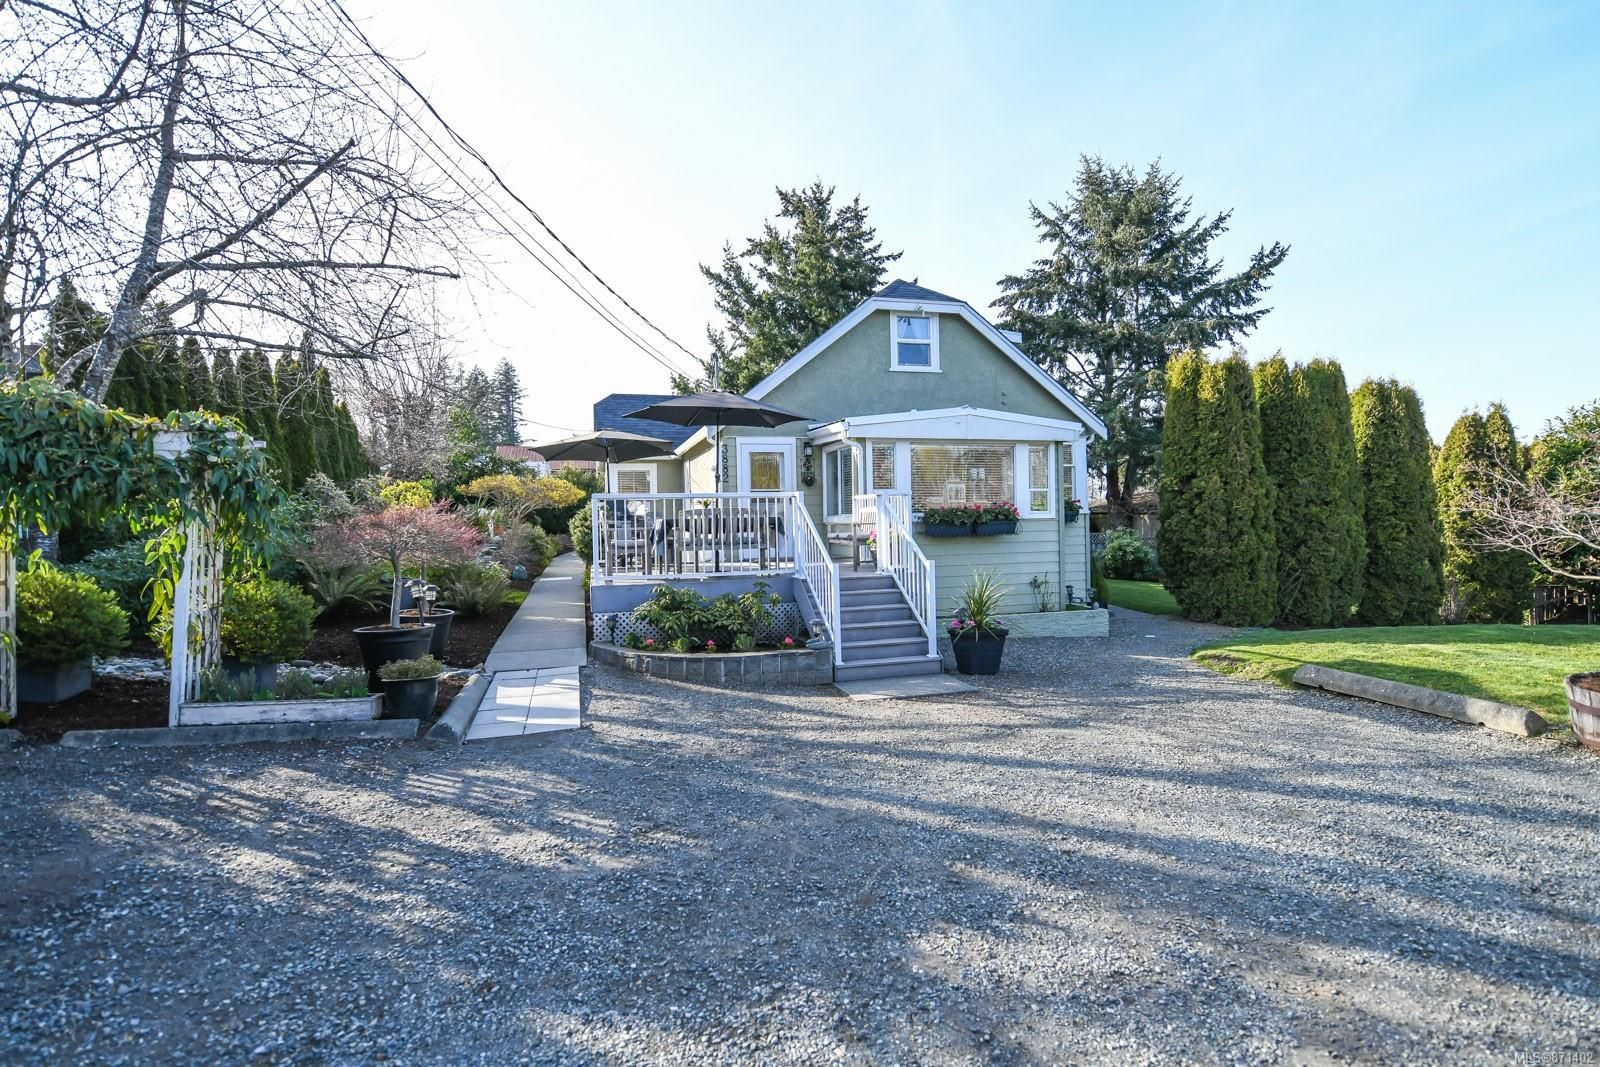 Main Photo: 3882 Royston Rd in : CV Courtenay South House for sale (Comox Valley)  : MLS®# 871402